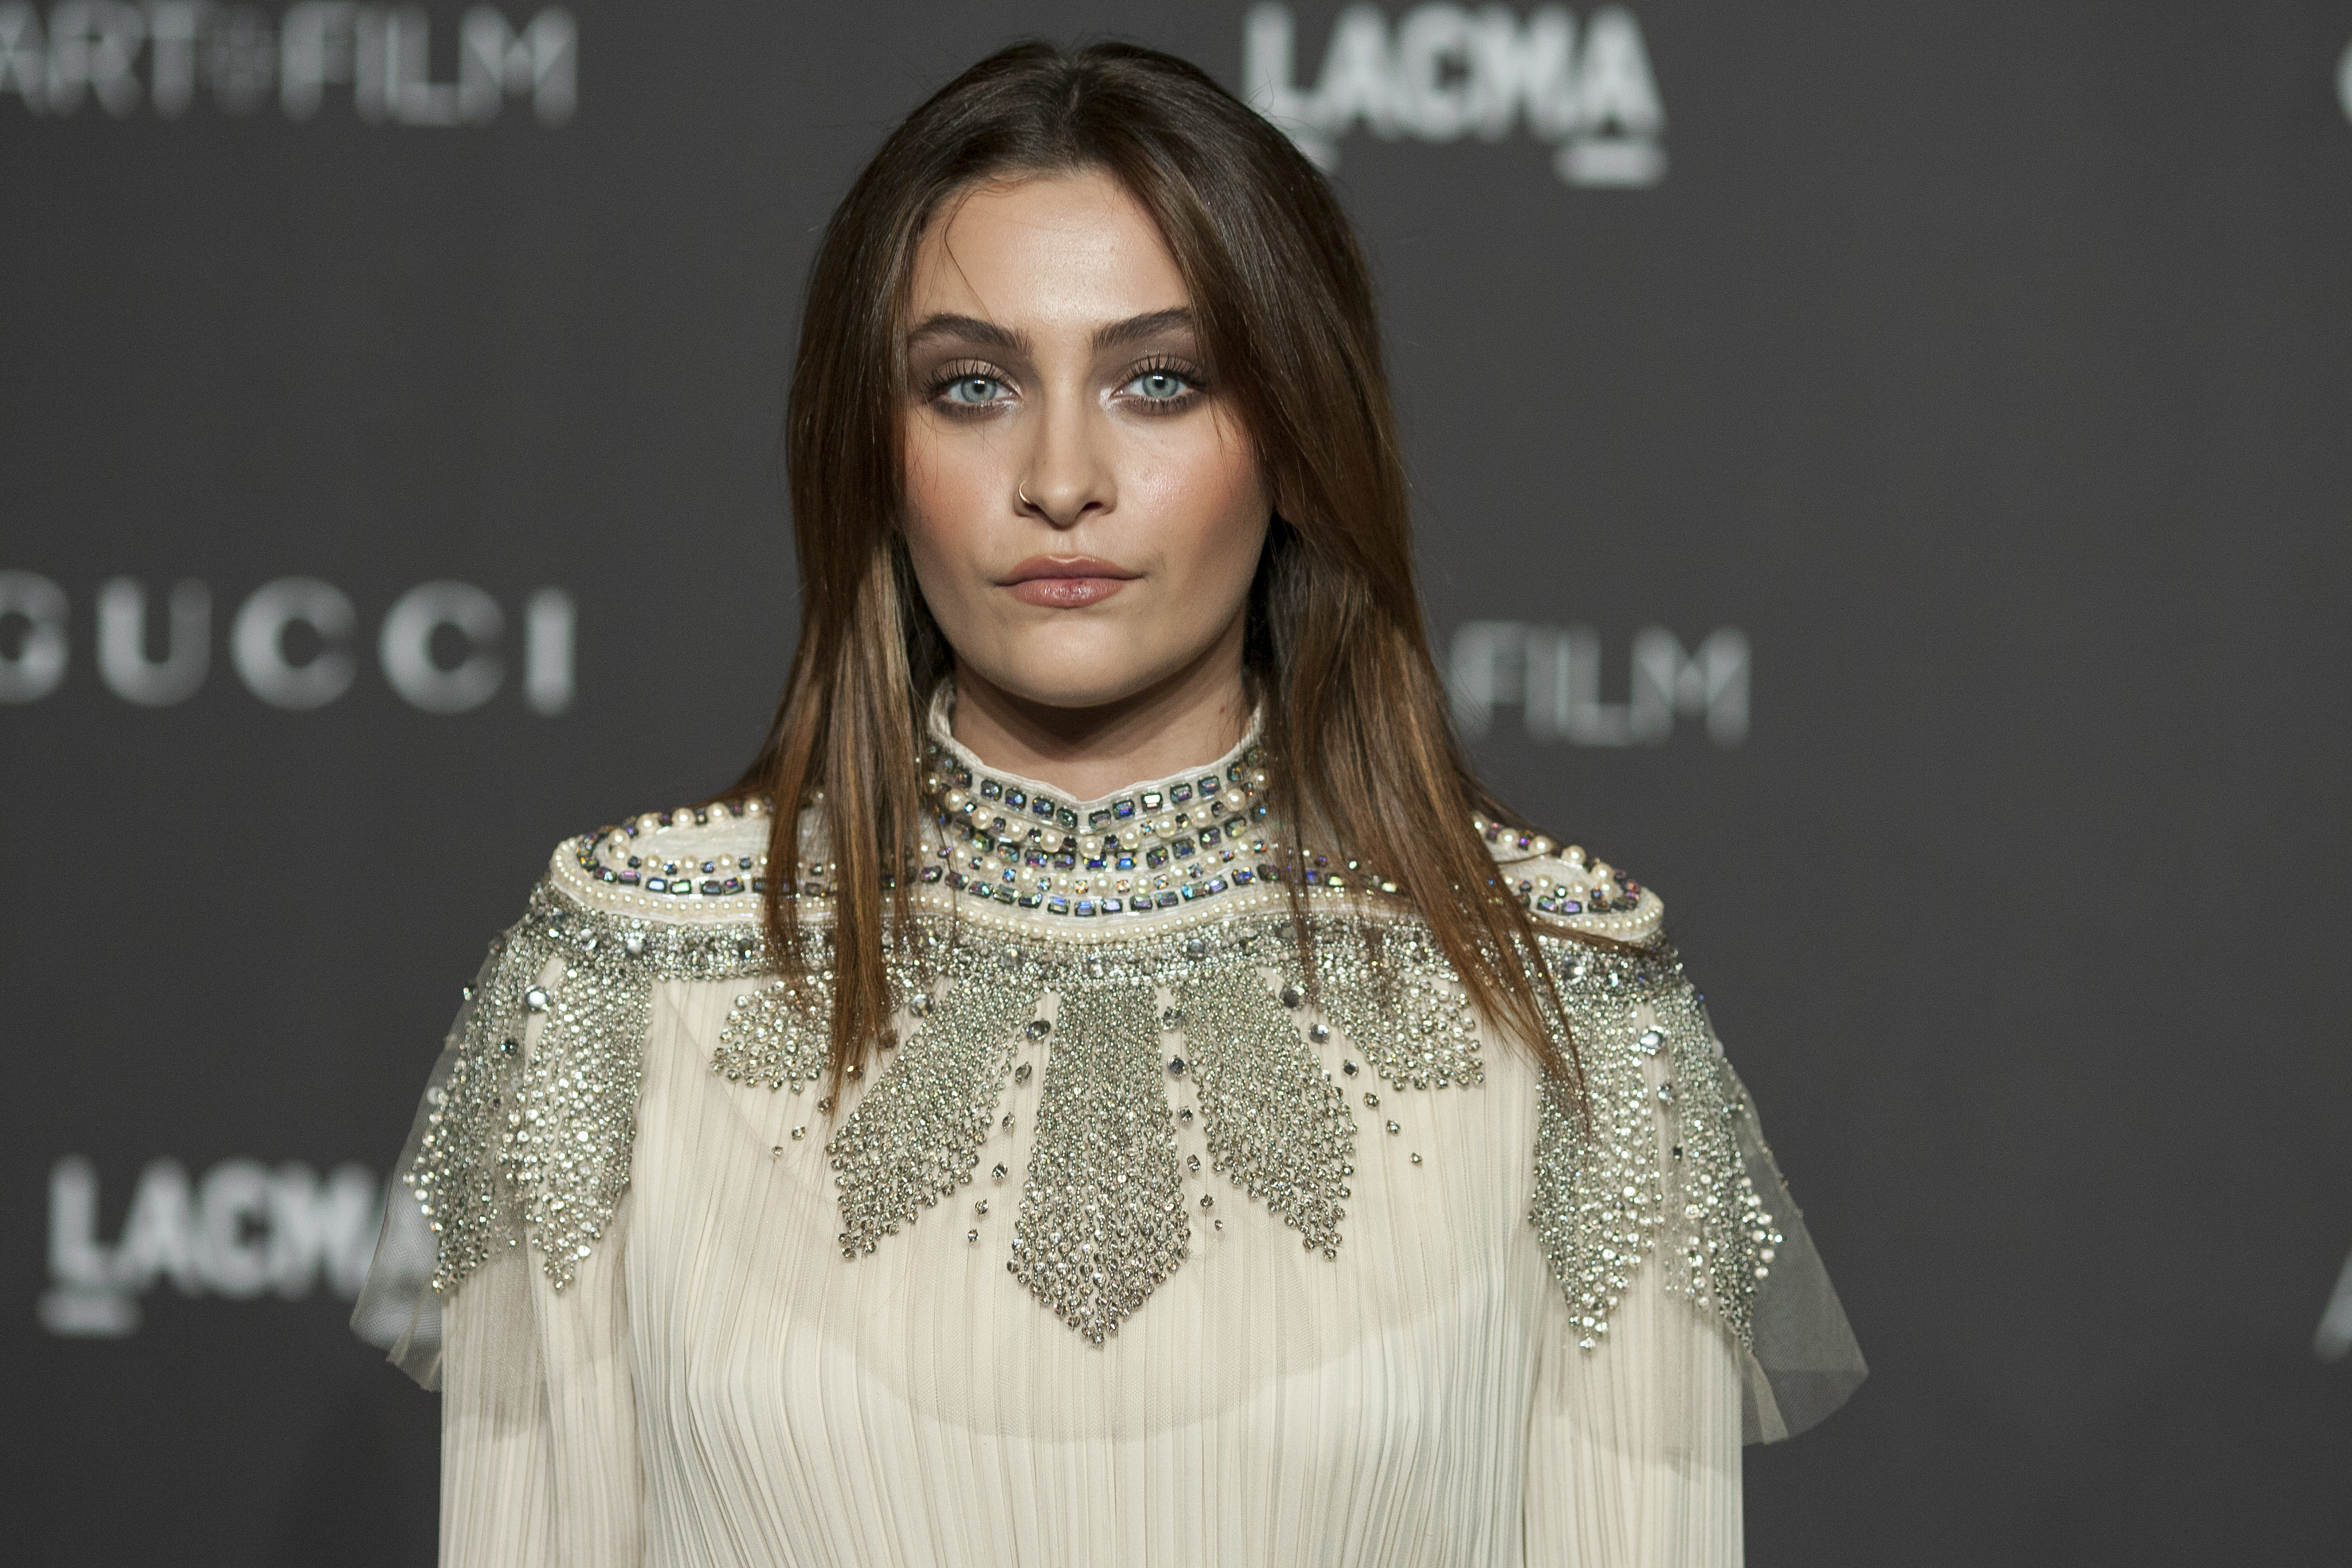 Paris Jackson Gives New Details of 'Nonstop BS' Week After Hospitalization